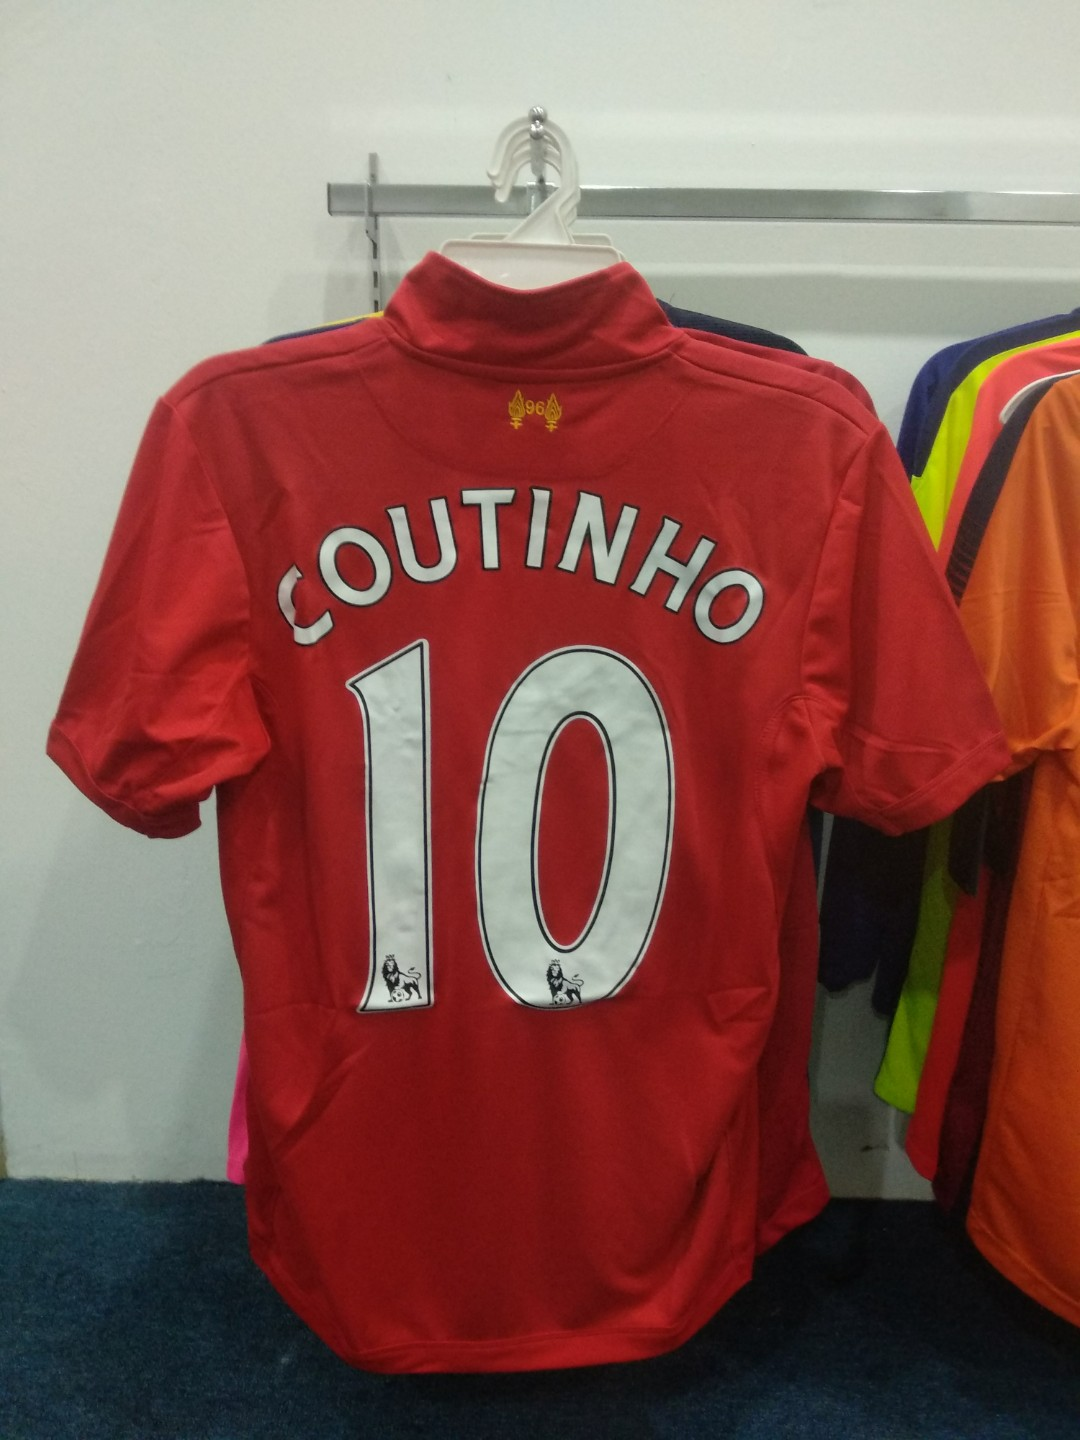 sale retailer 8592d 2ade2 Liverpool Coutinho 2012/13 Classic Home Kit S Size